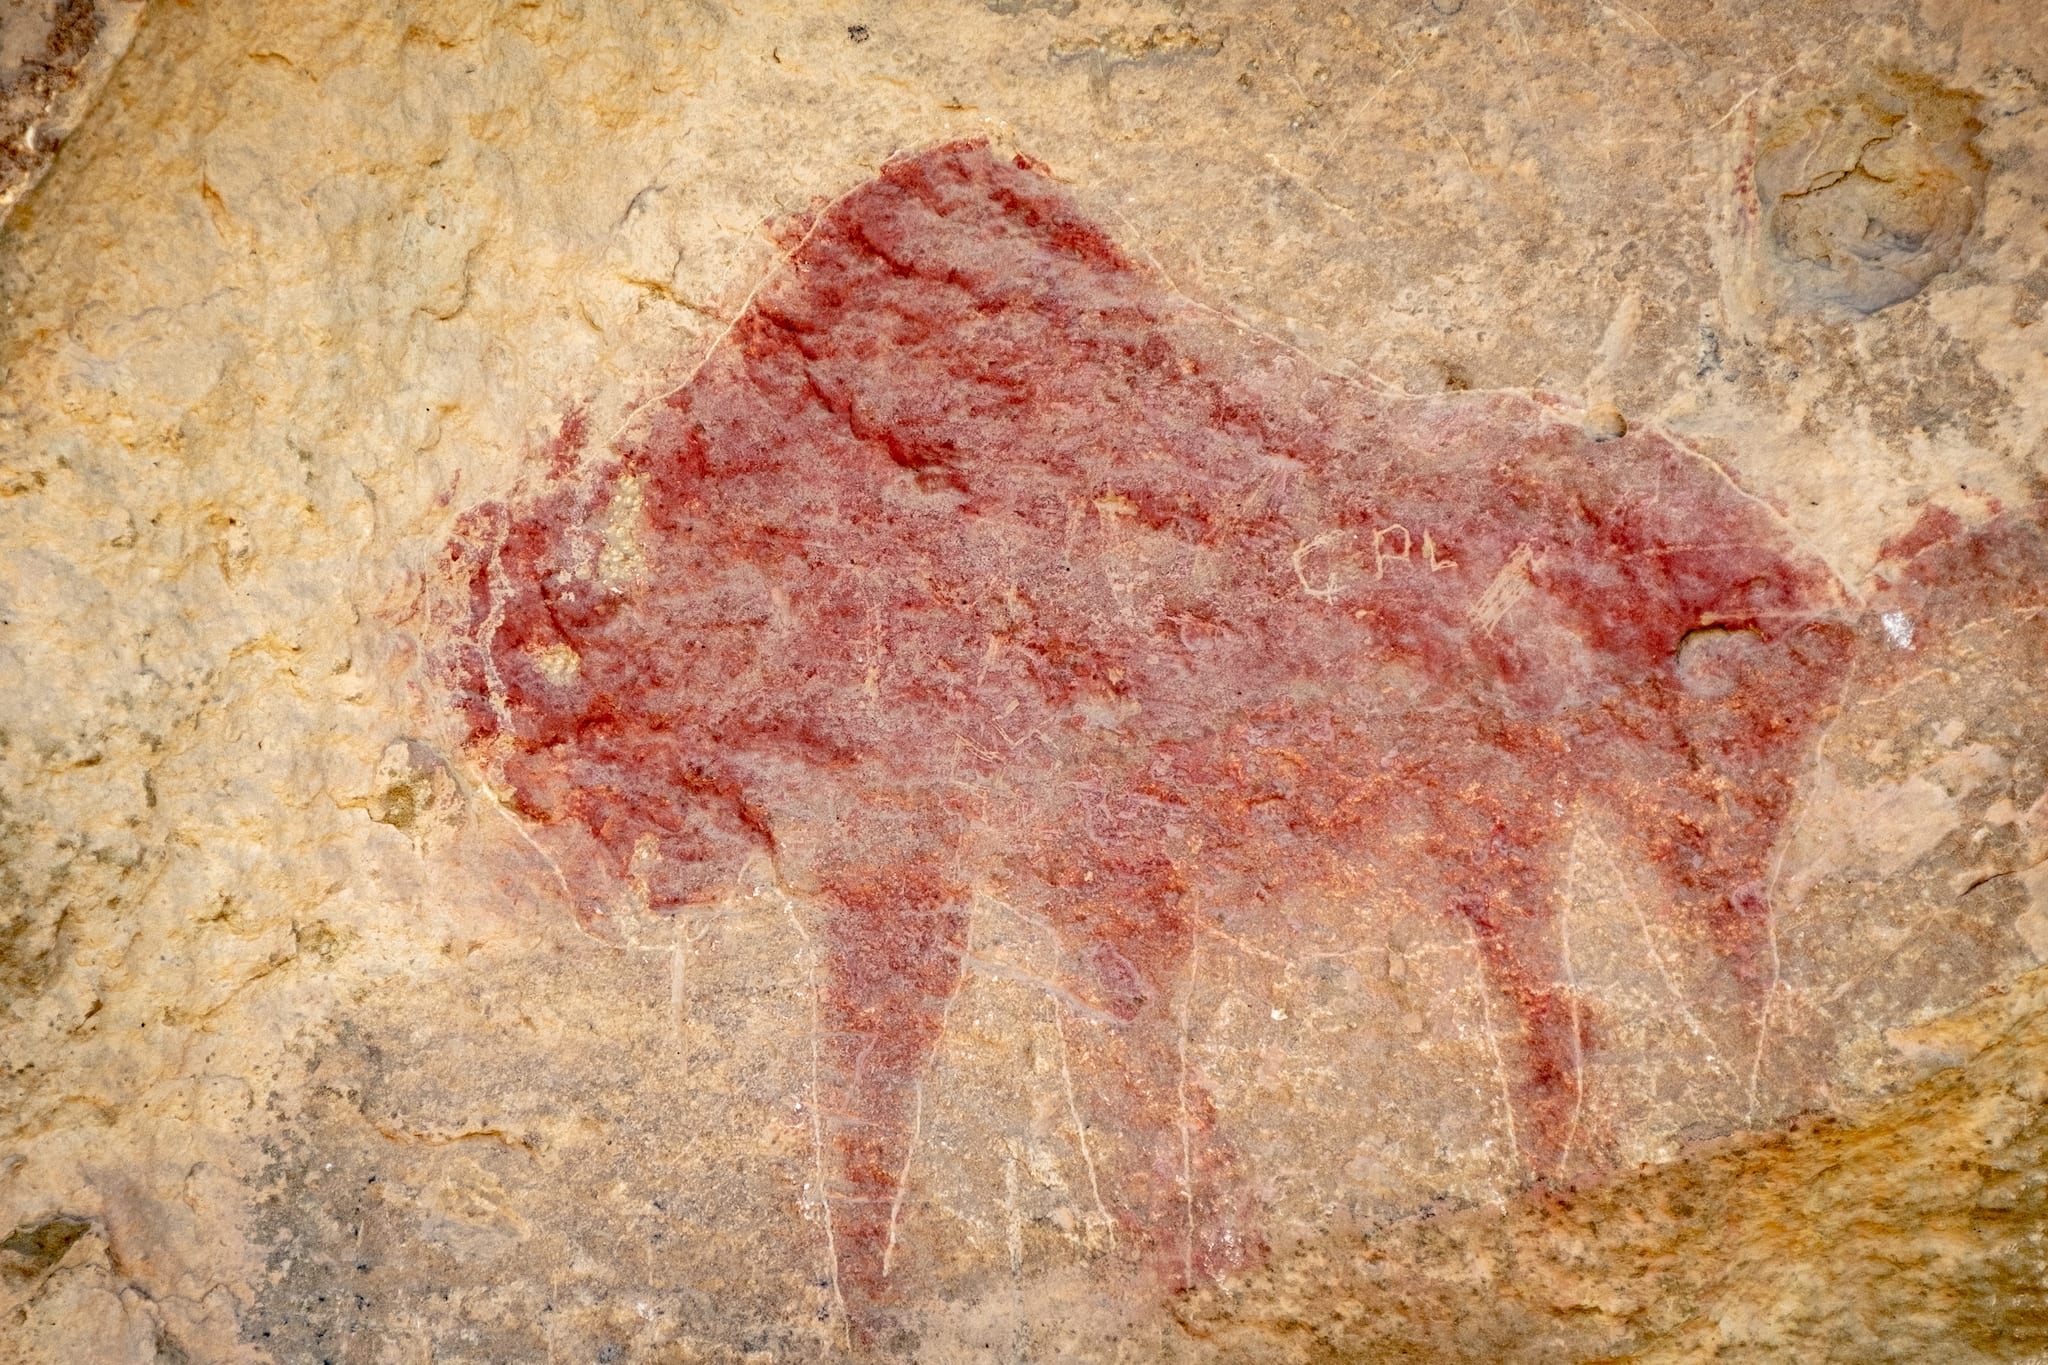 Ute Mountain Tribal Park Modern Ute Pictograph of Bison